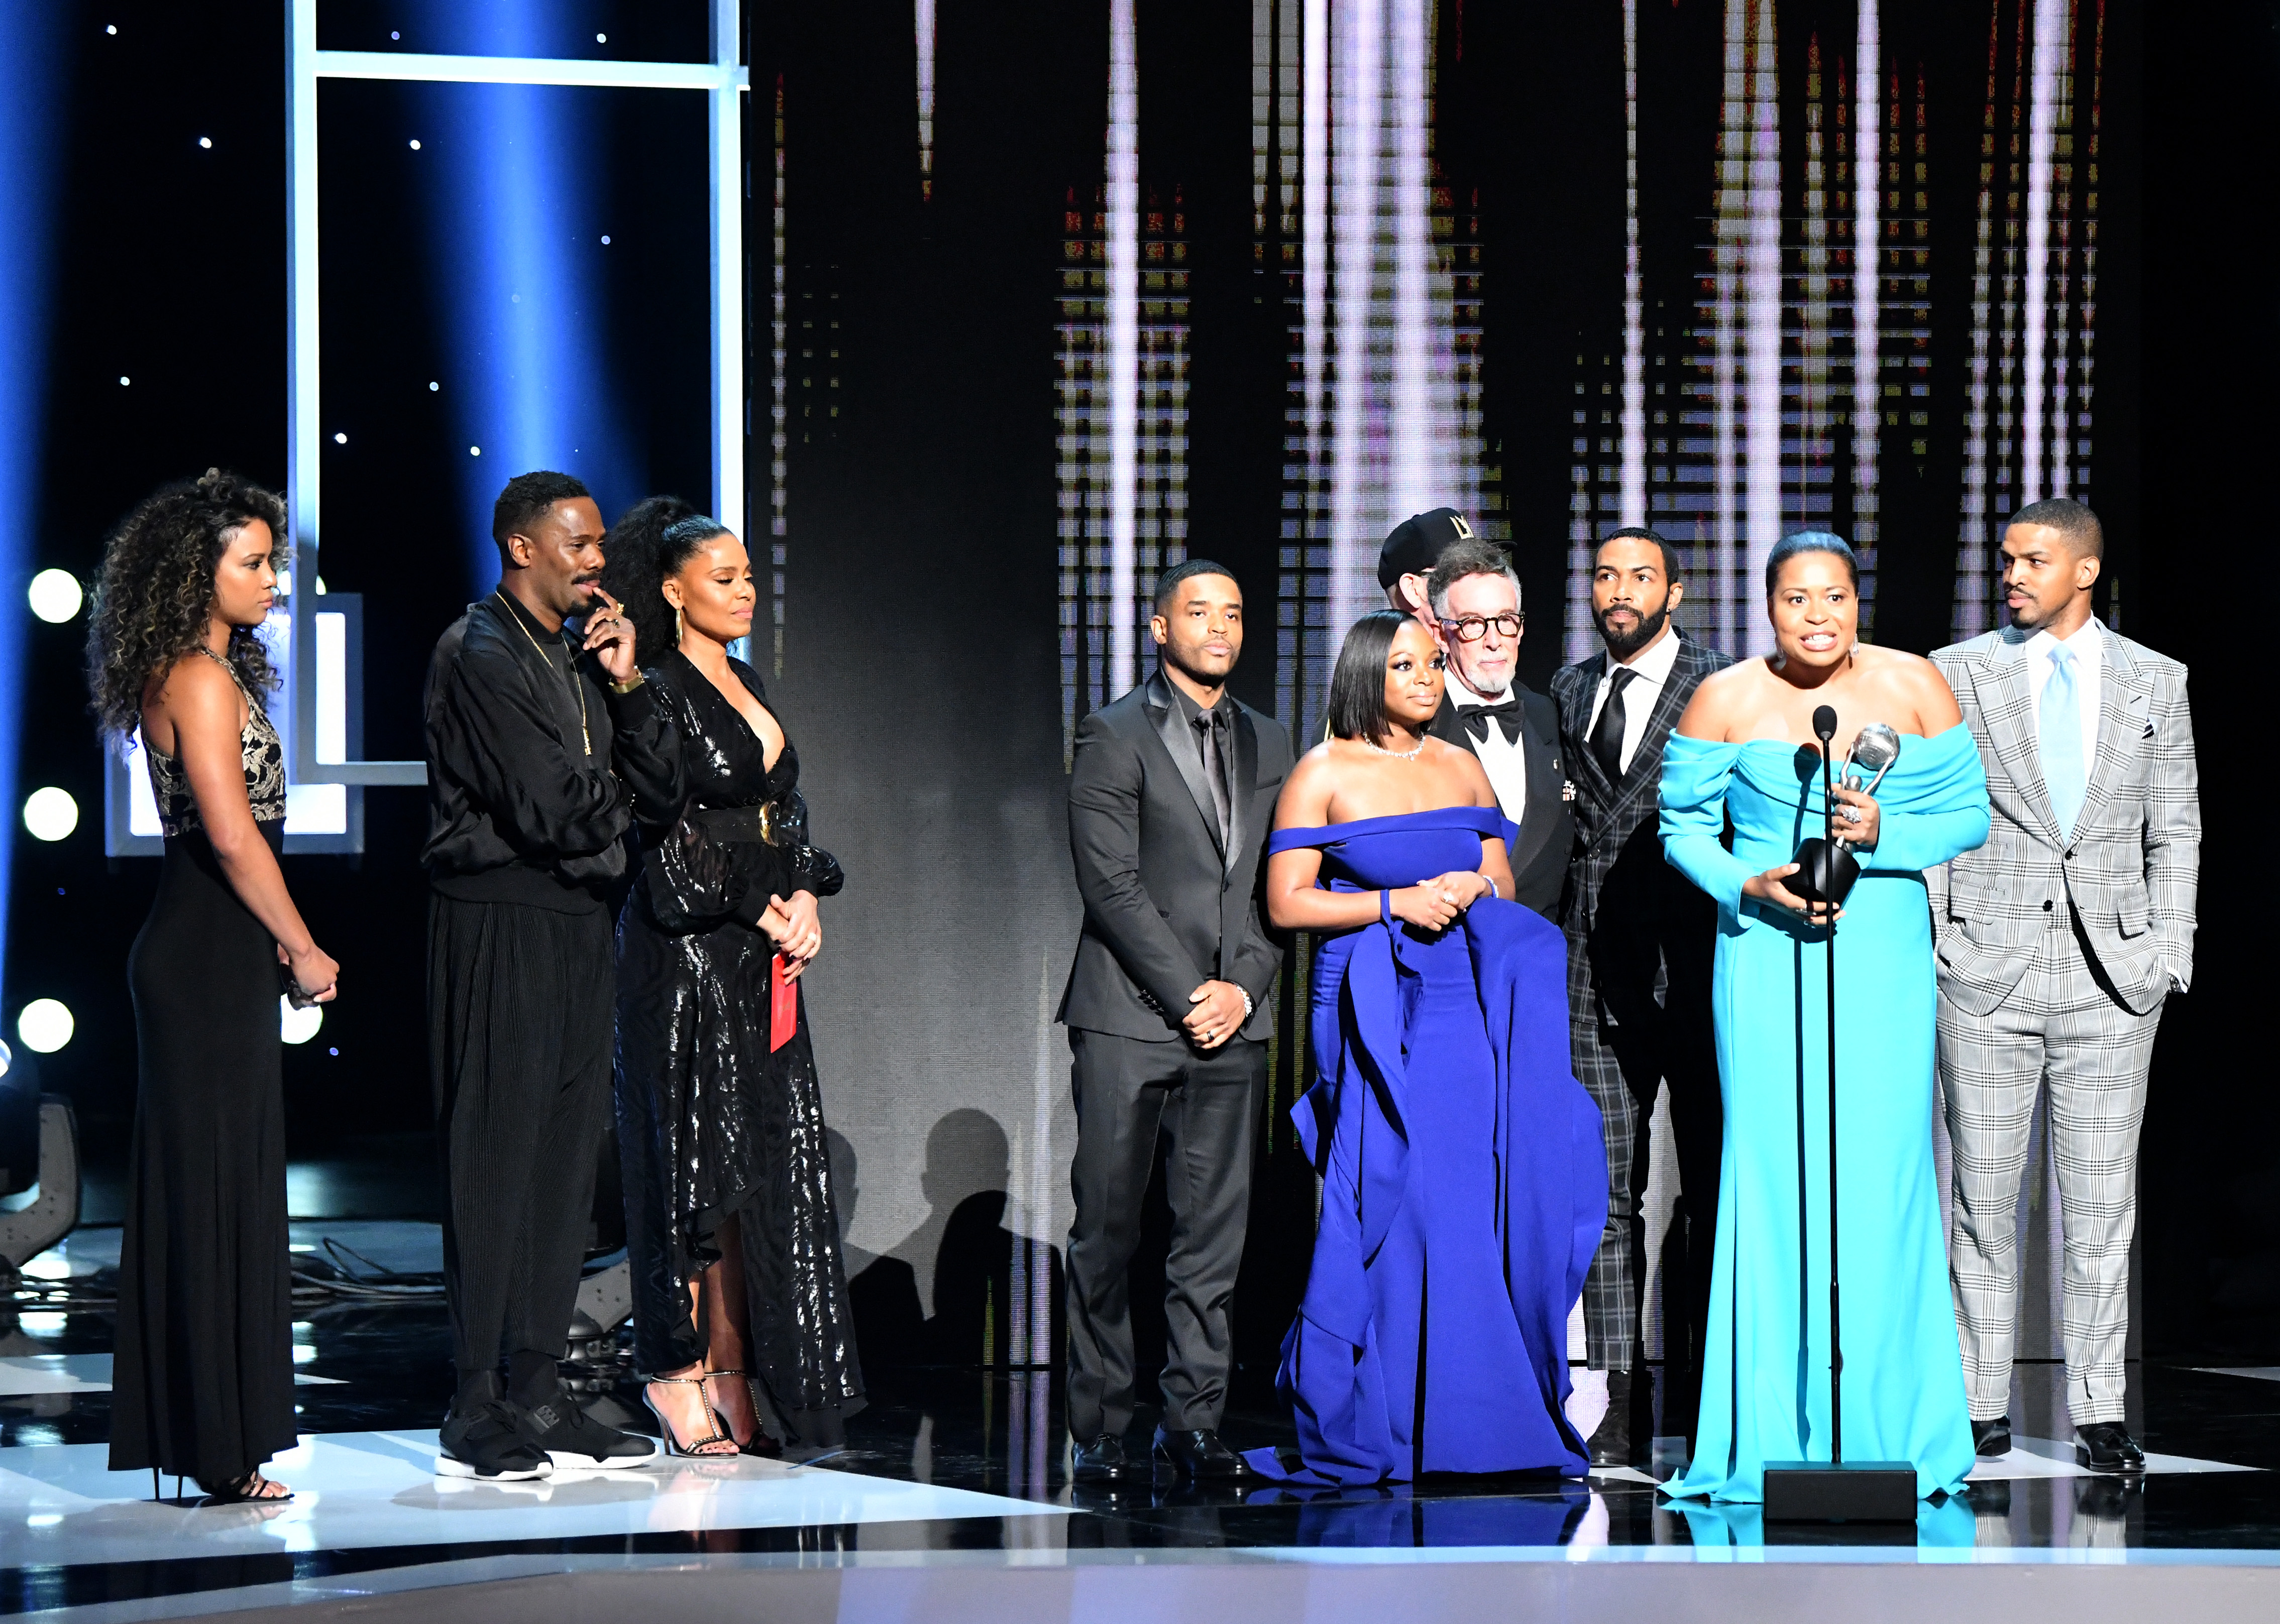 HOLLYWOOD, CALIFORNIA - MARCH 30: Cast and crew of 'Power' accept the Outstanding Drama Series onstage at the 50th NAACP Image Awards at Dolby Theatre on March 30, 2019 in Hollywood, California. (Photo by Earl Gibson III/Getty Images for NAACP)